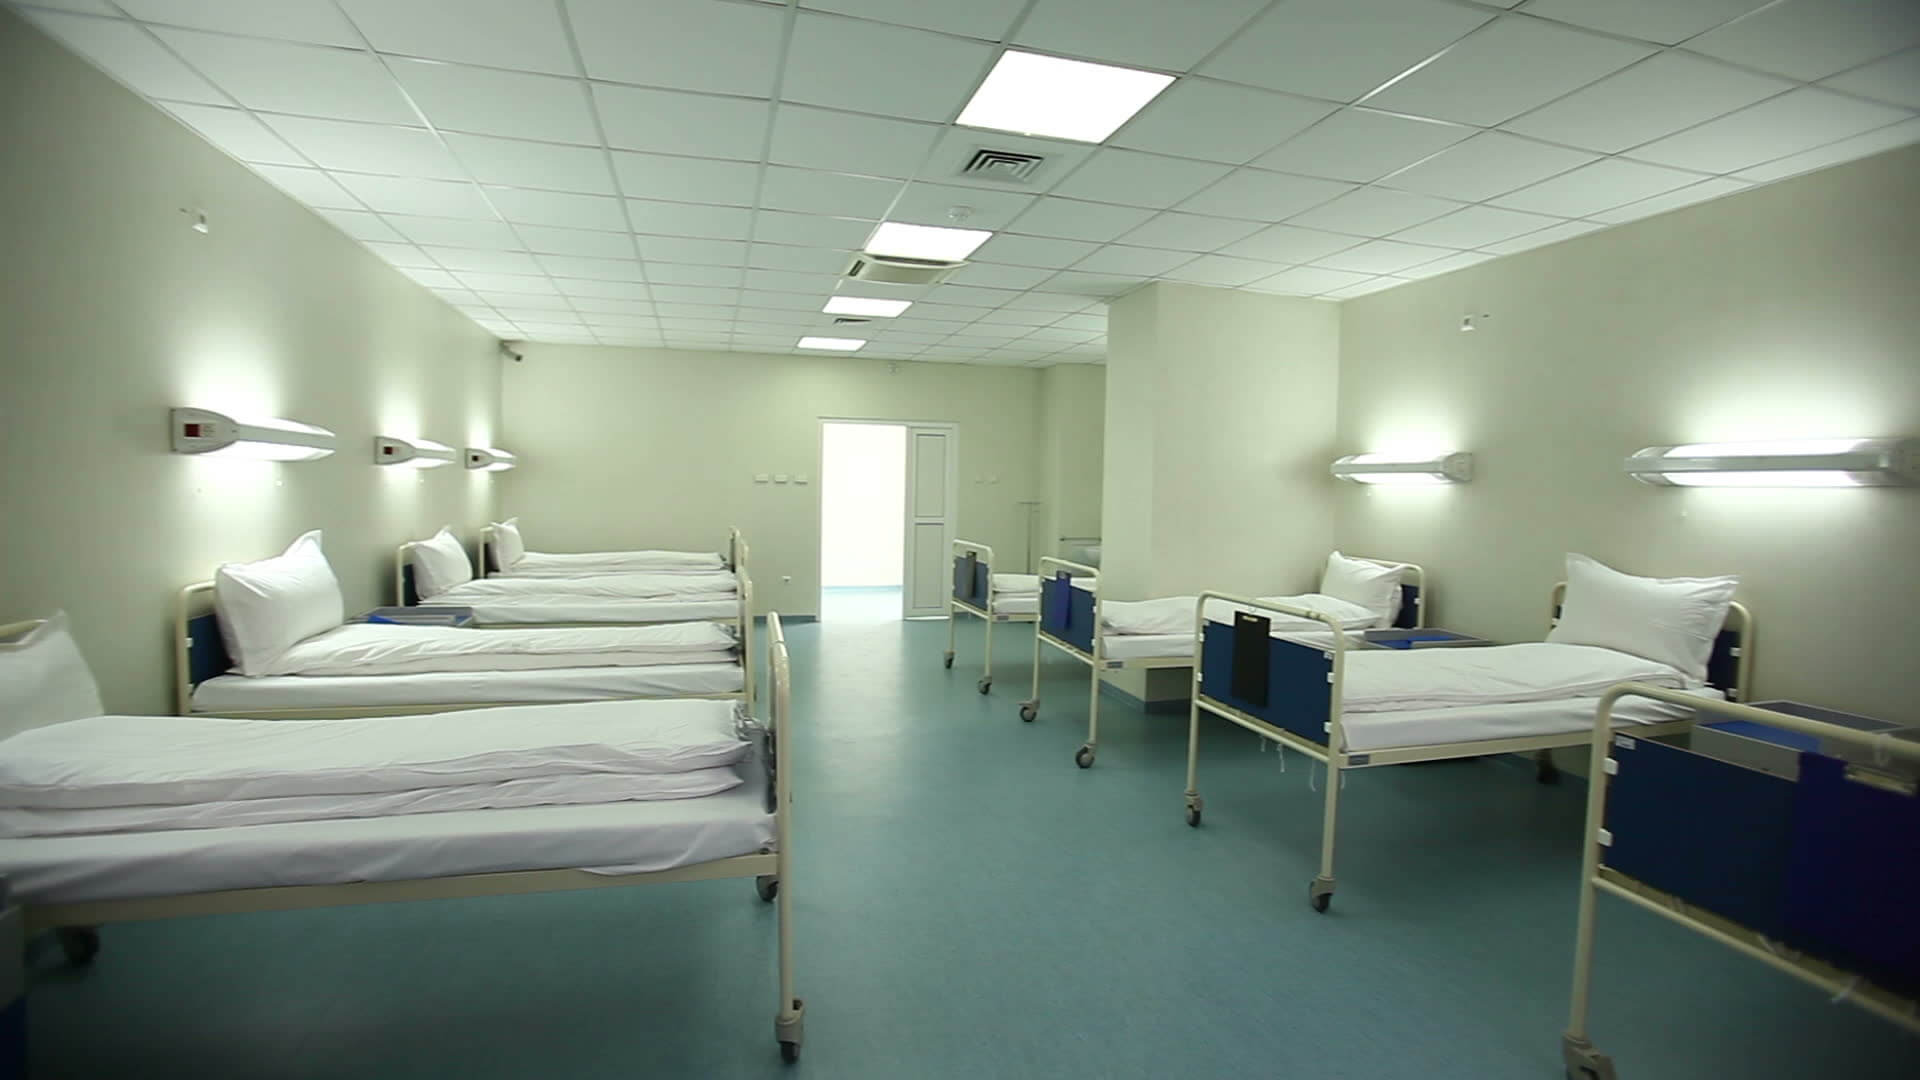 empty-hospital-room-showing-bed